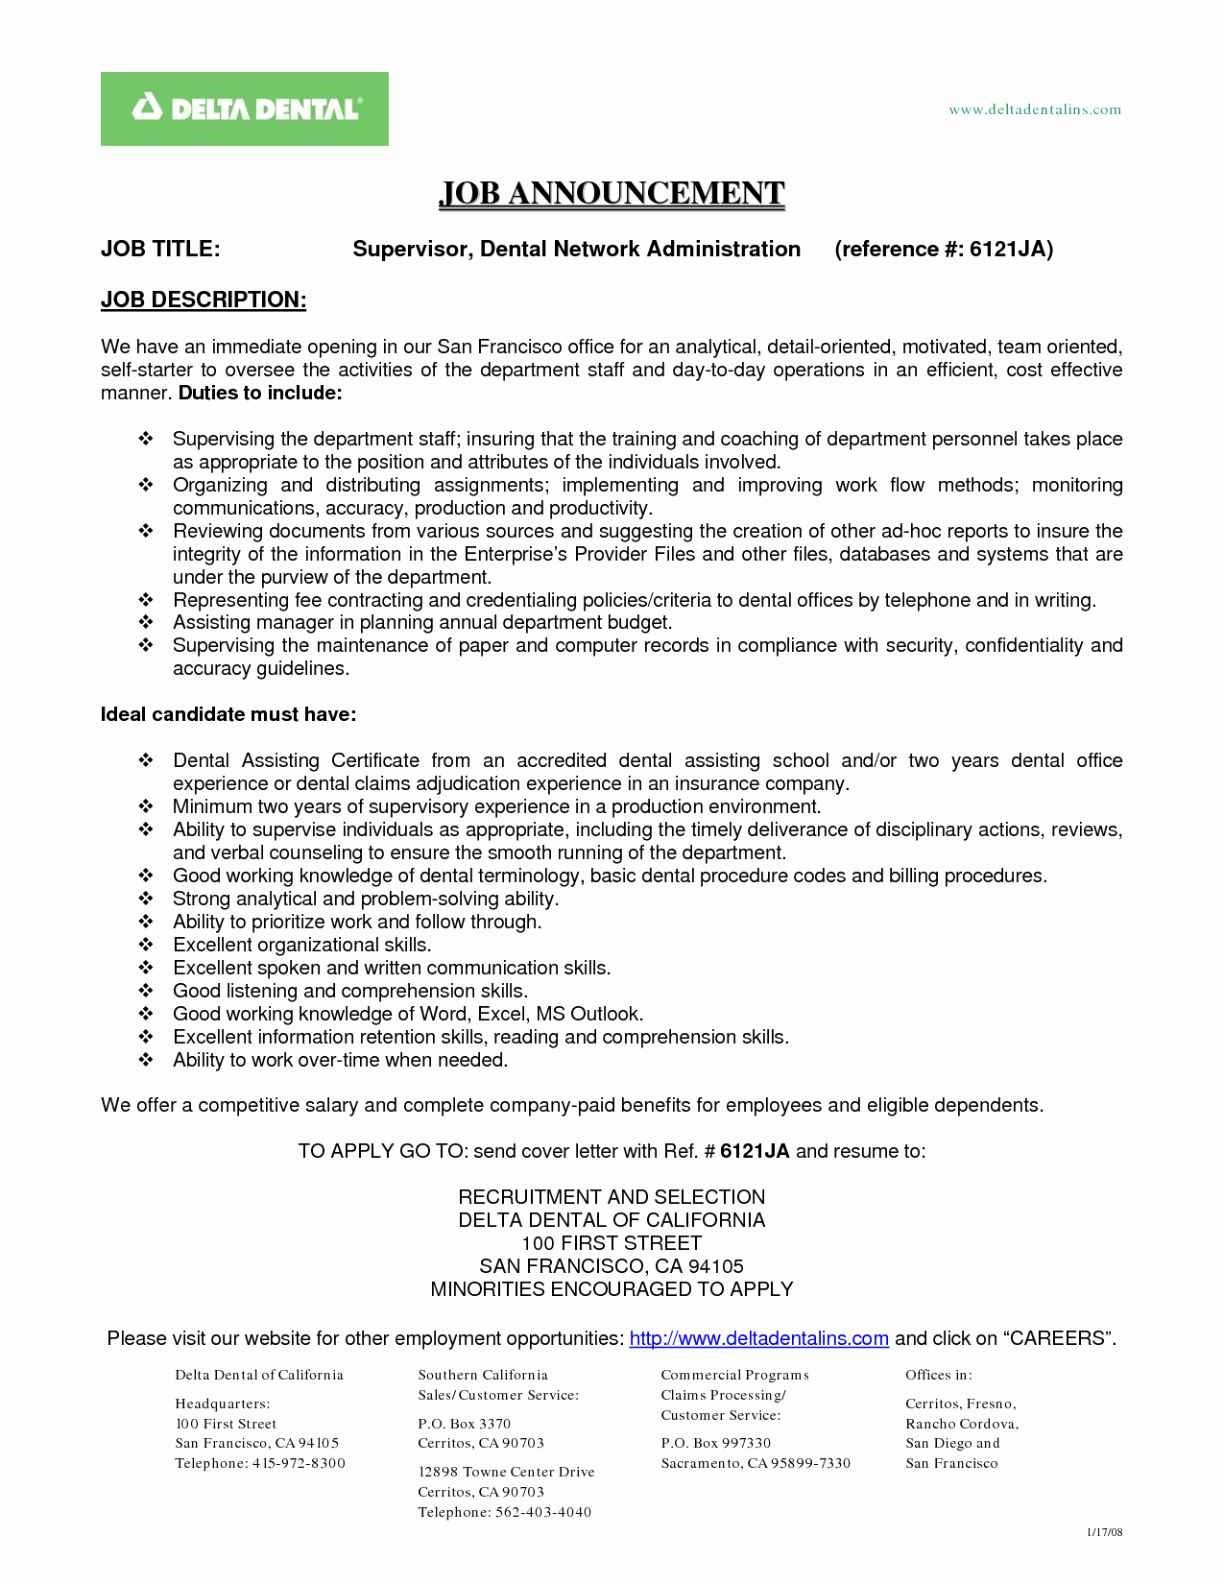 Resume for Dental Office Manager - Fice Manager Resume Awesome assistant Manager Resume Beautiful